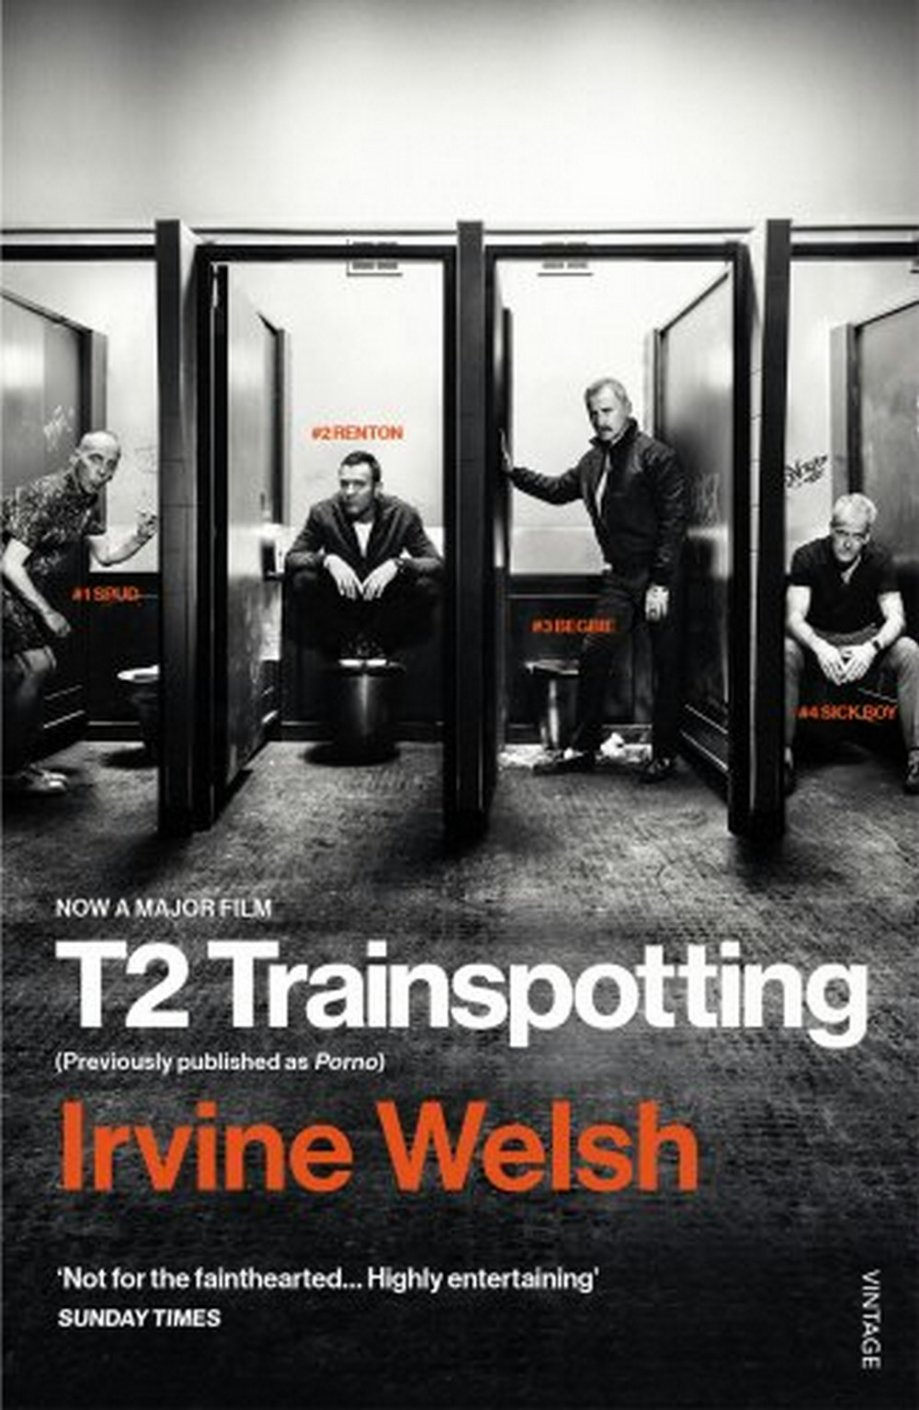 T2 Trainspotting (Film Tie-In edition)